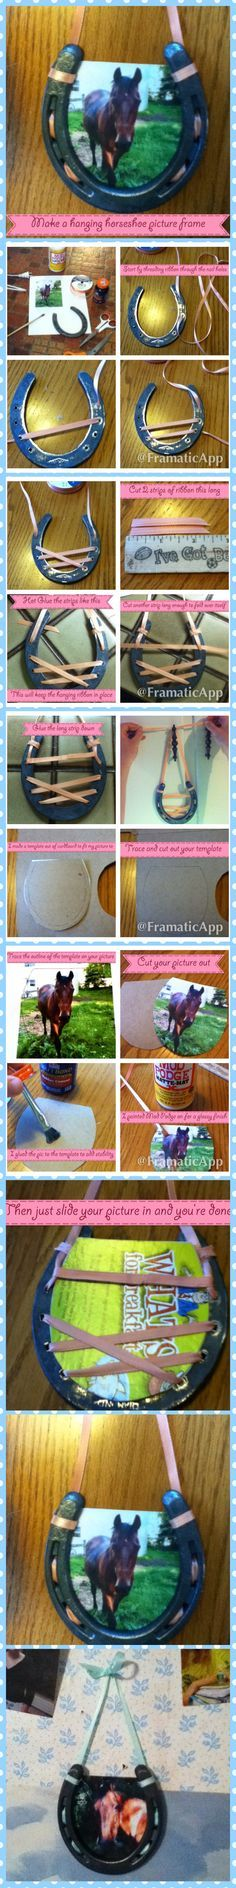 Make a cute and simple hanging horseshoe picture frame...I know someone who would like this!